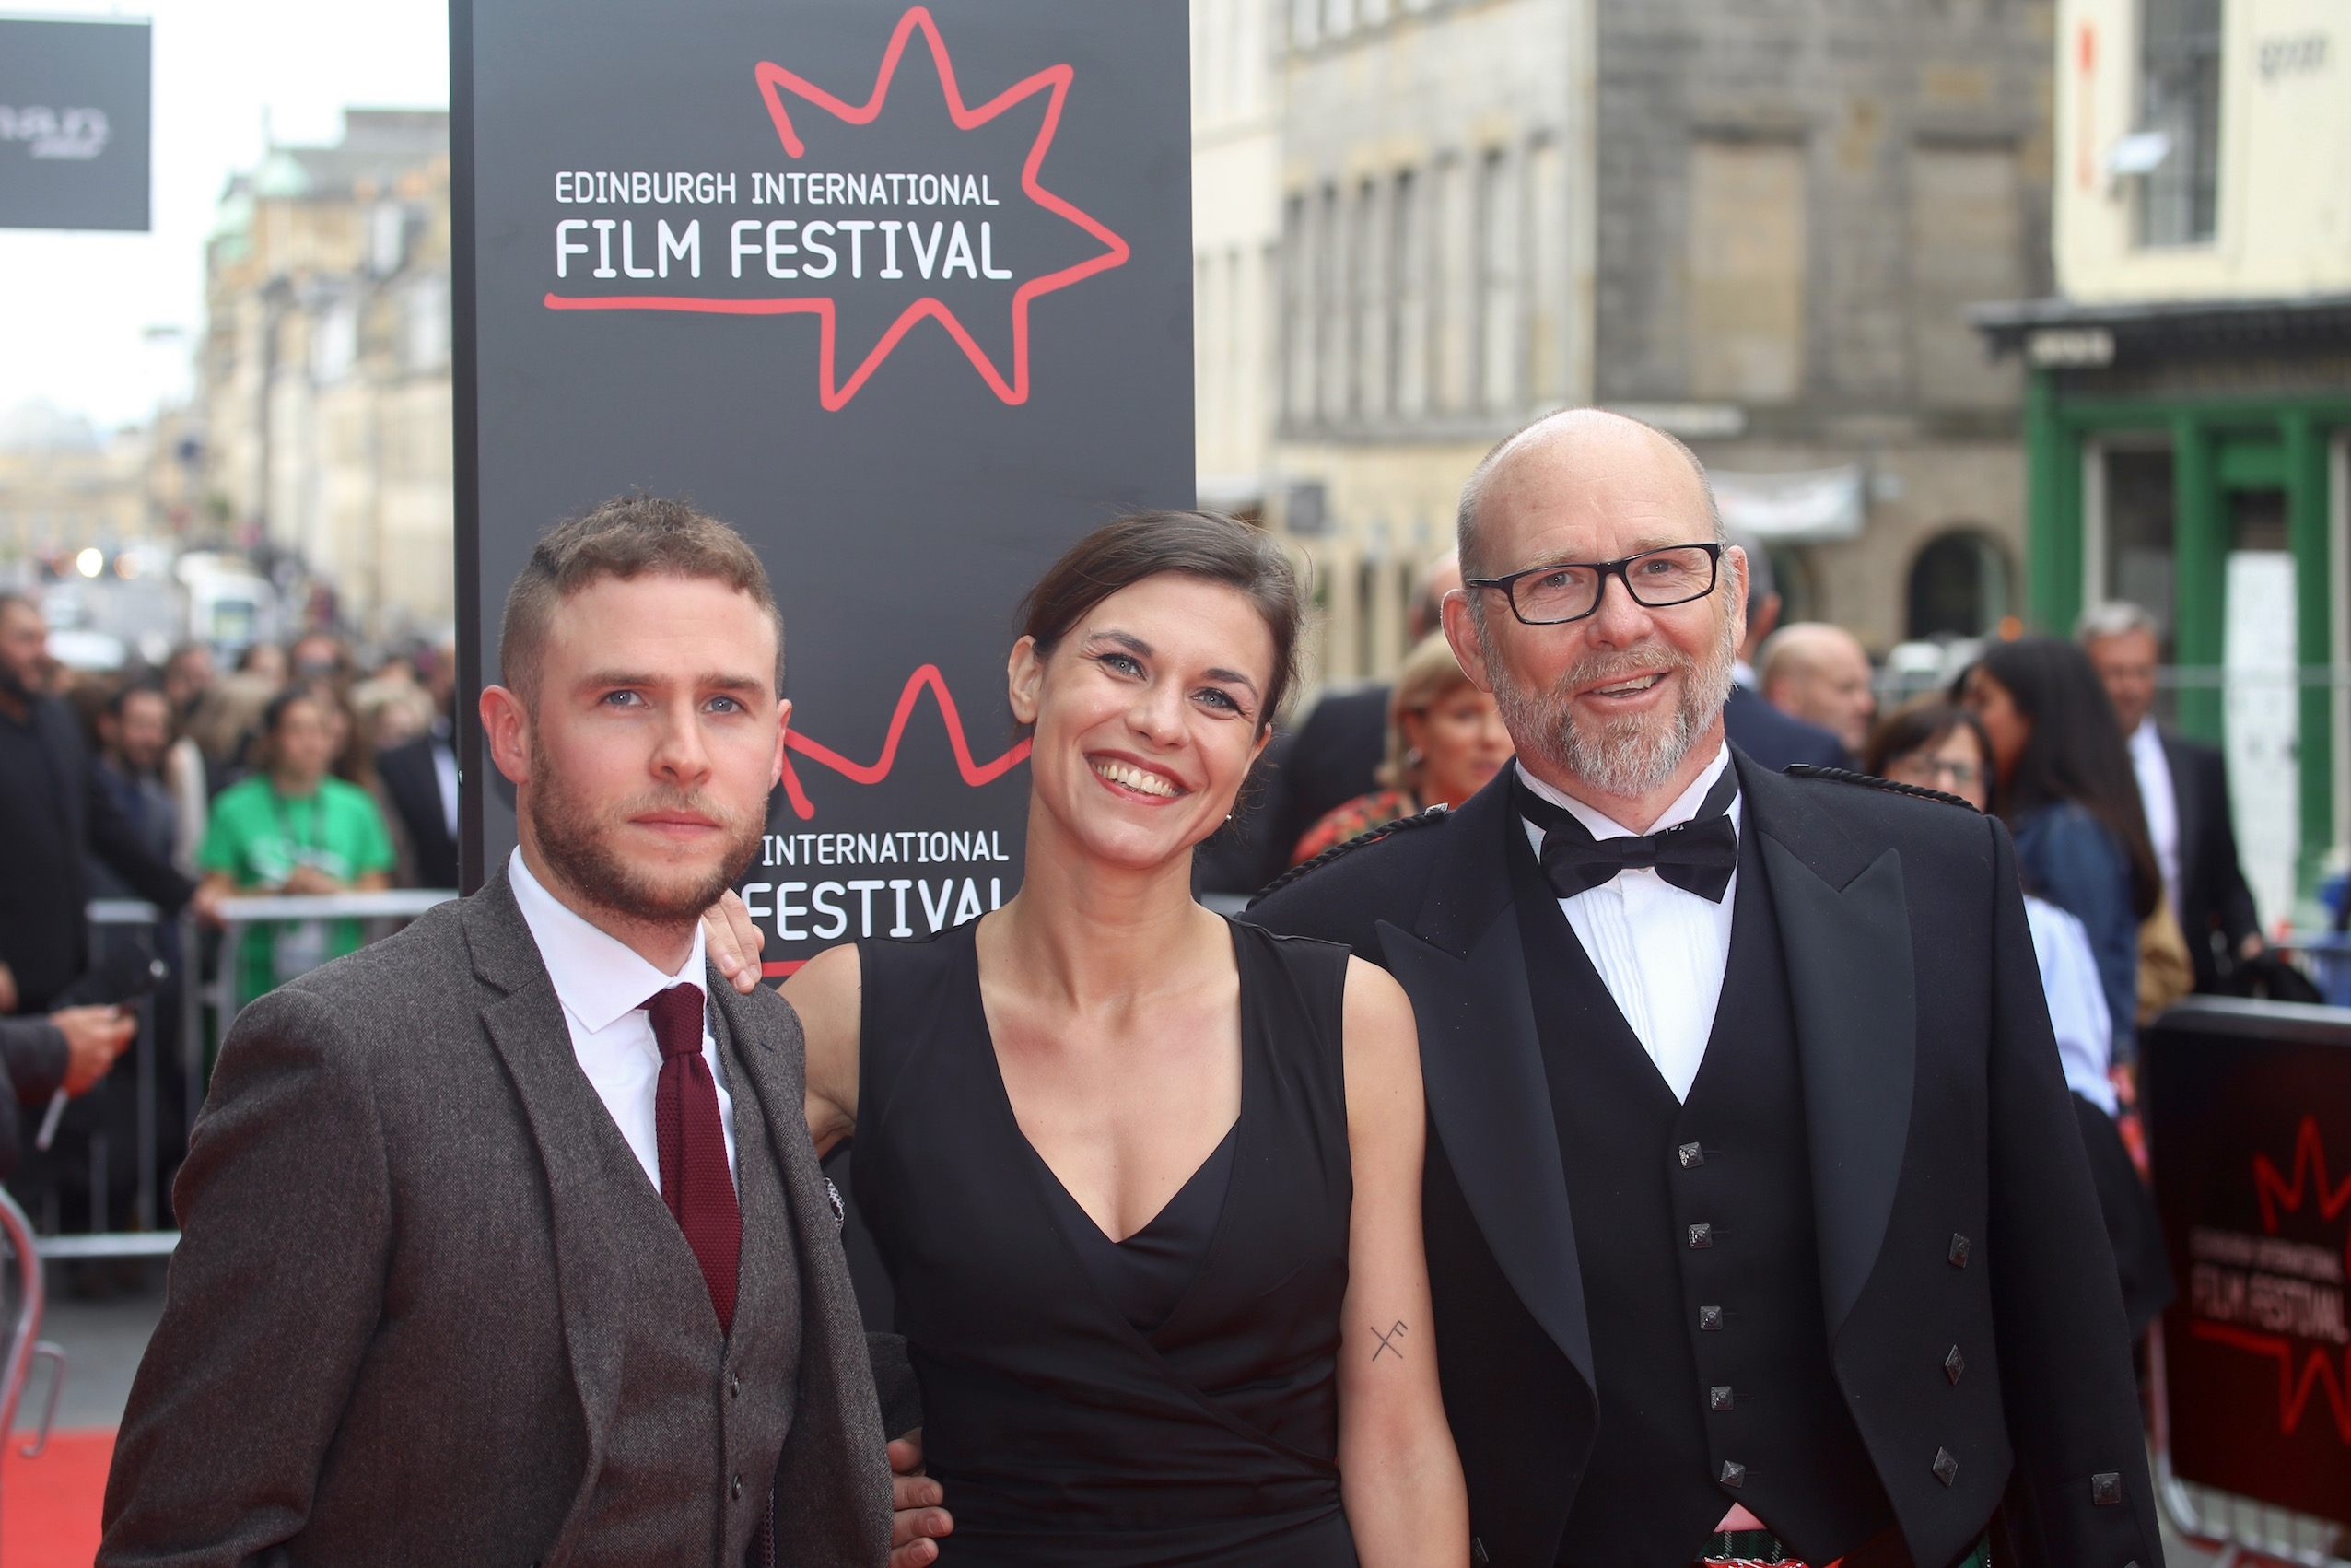 Iain De Caestecker,Ana Ularu and Jason Connery